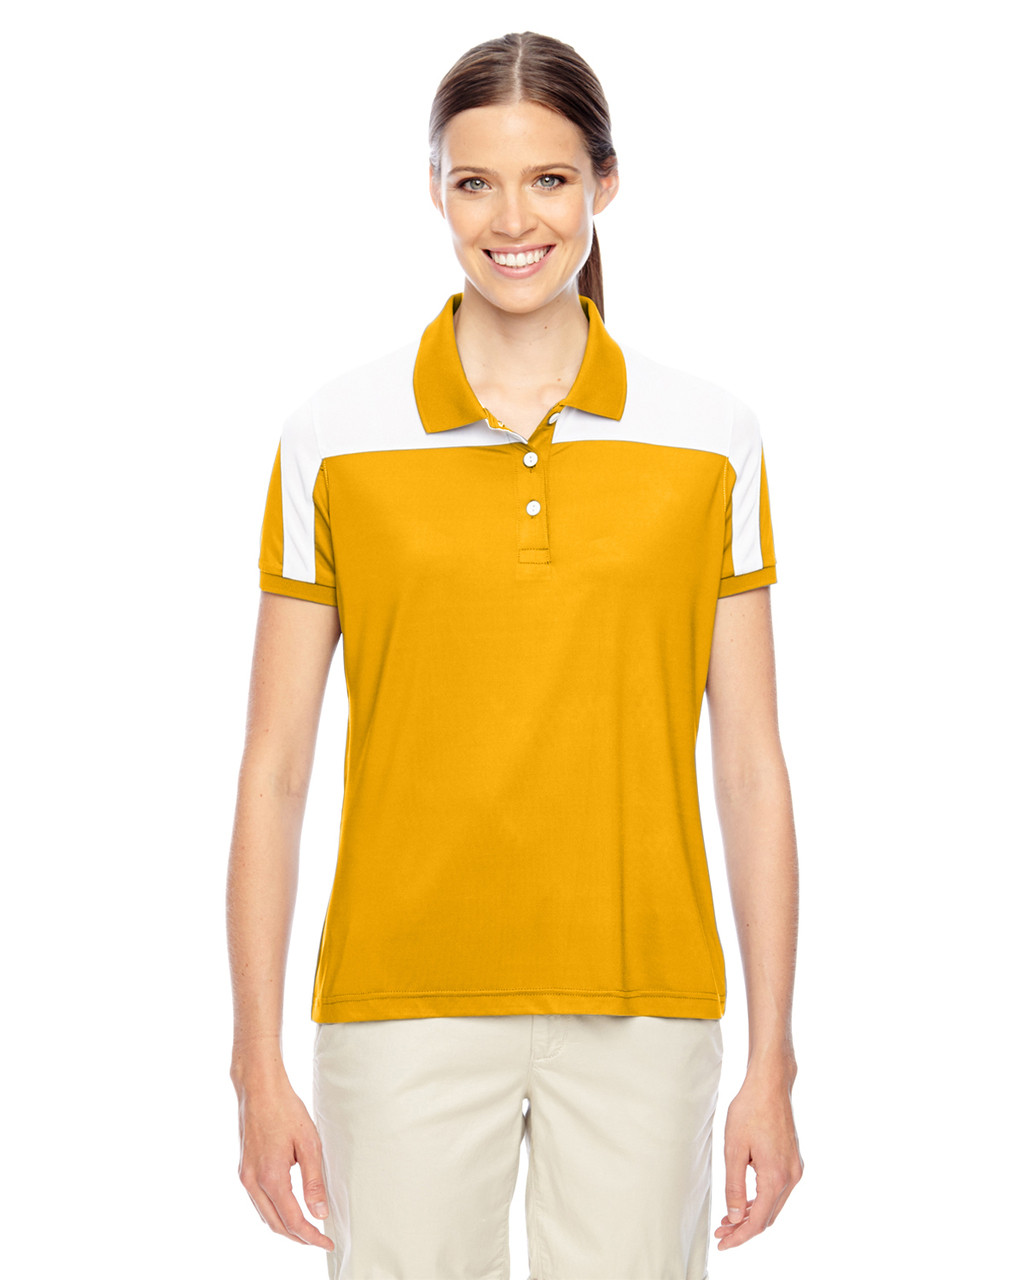 Athletic Gold/White - TT22W Team 365 Victor Performance Polo Shirt